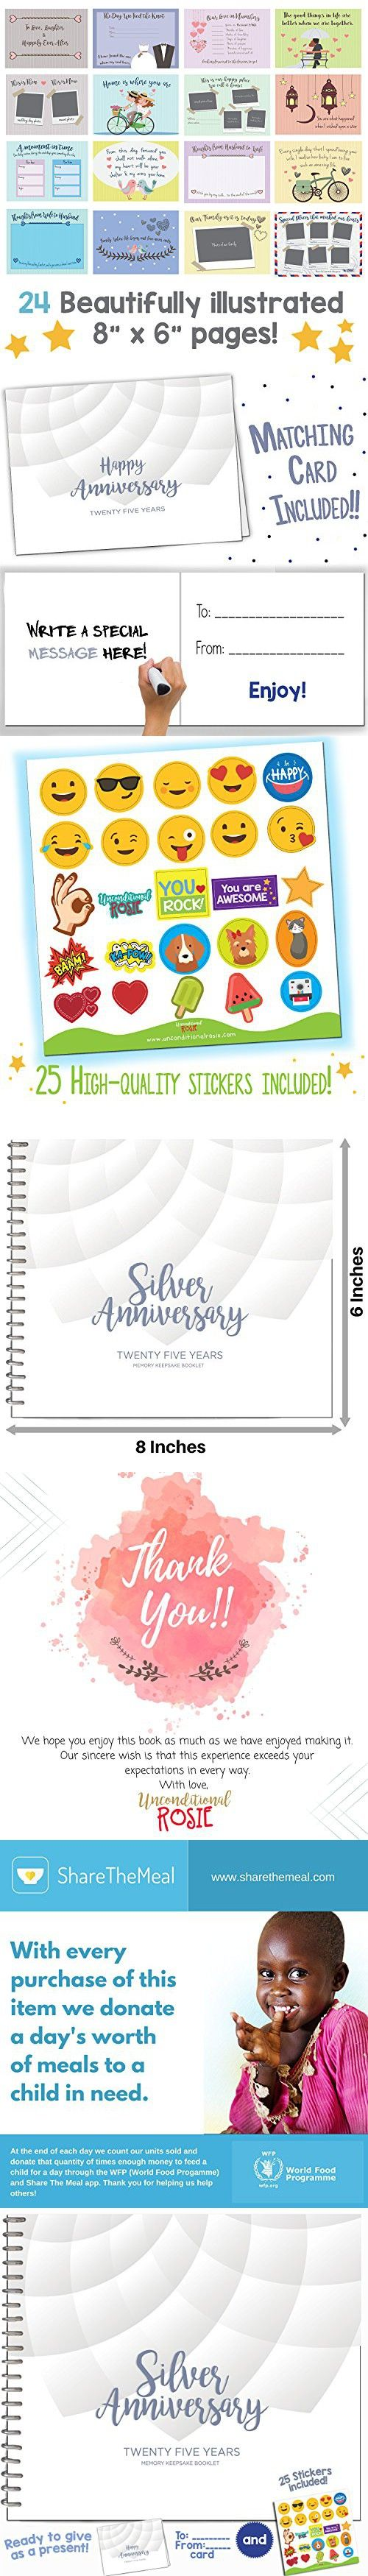 25TH ANNIVERSARY GIFTS FOR COUPLES BY YEAR - Twentyfive Year Booklet ...